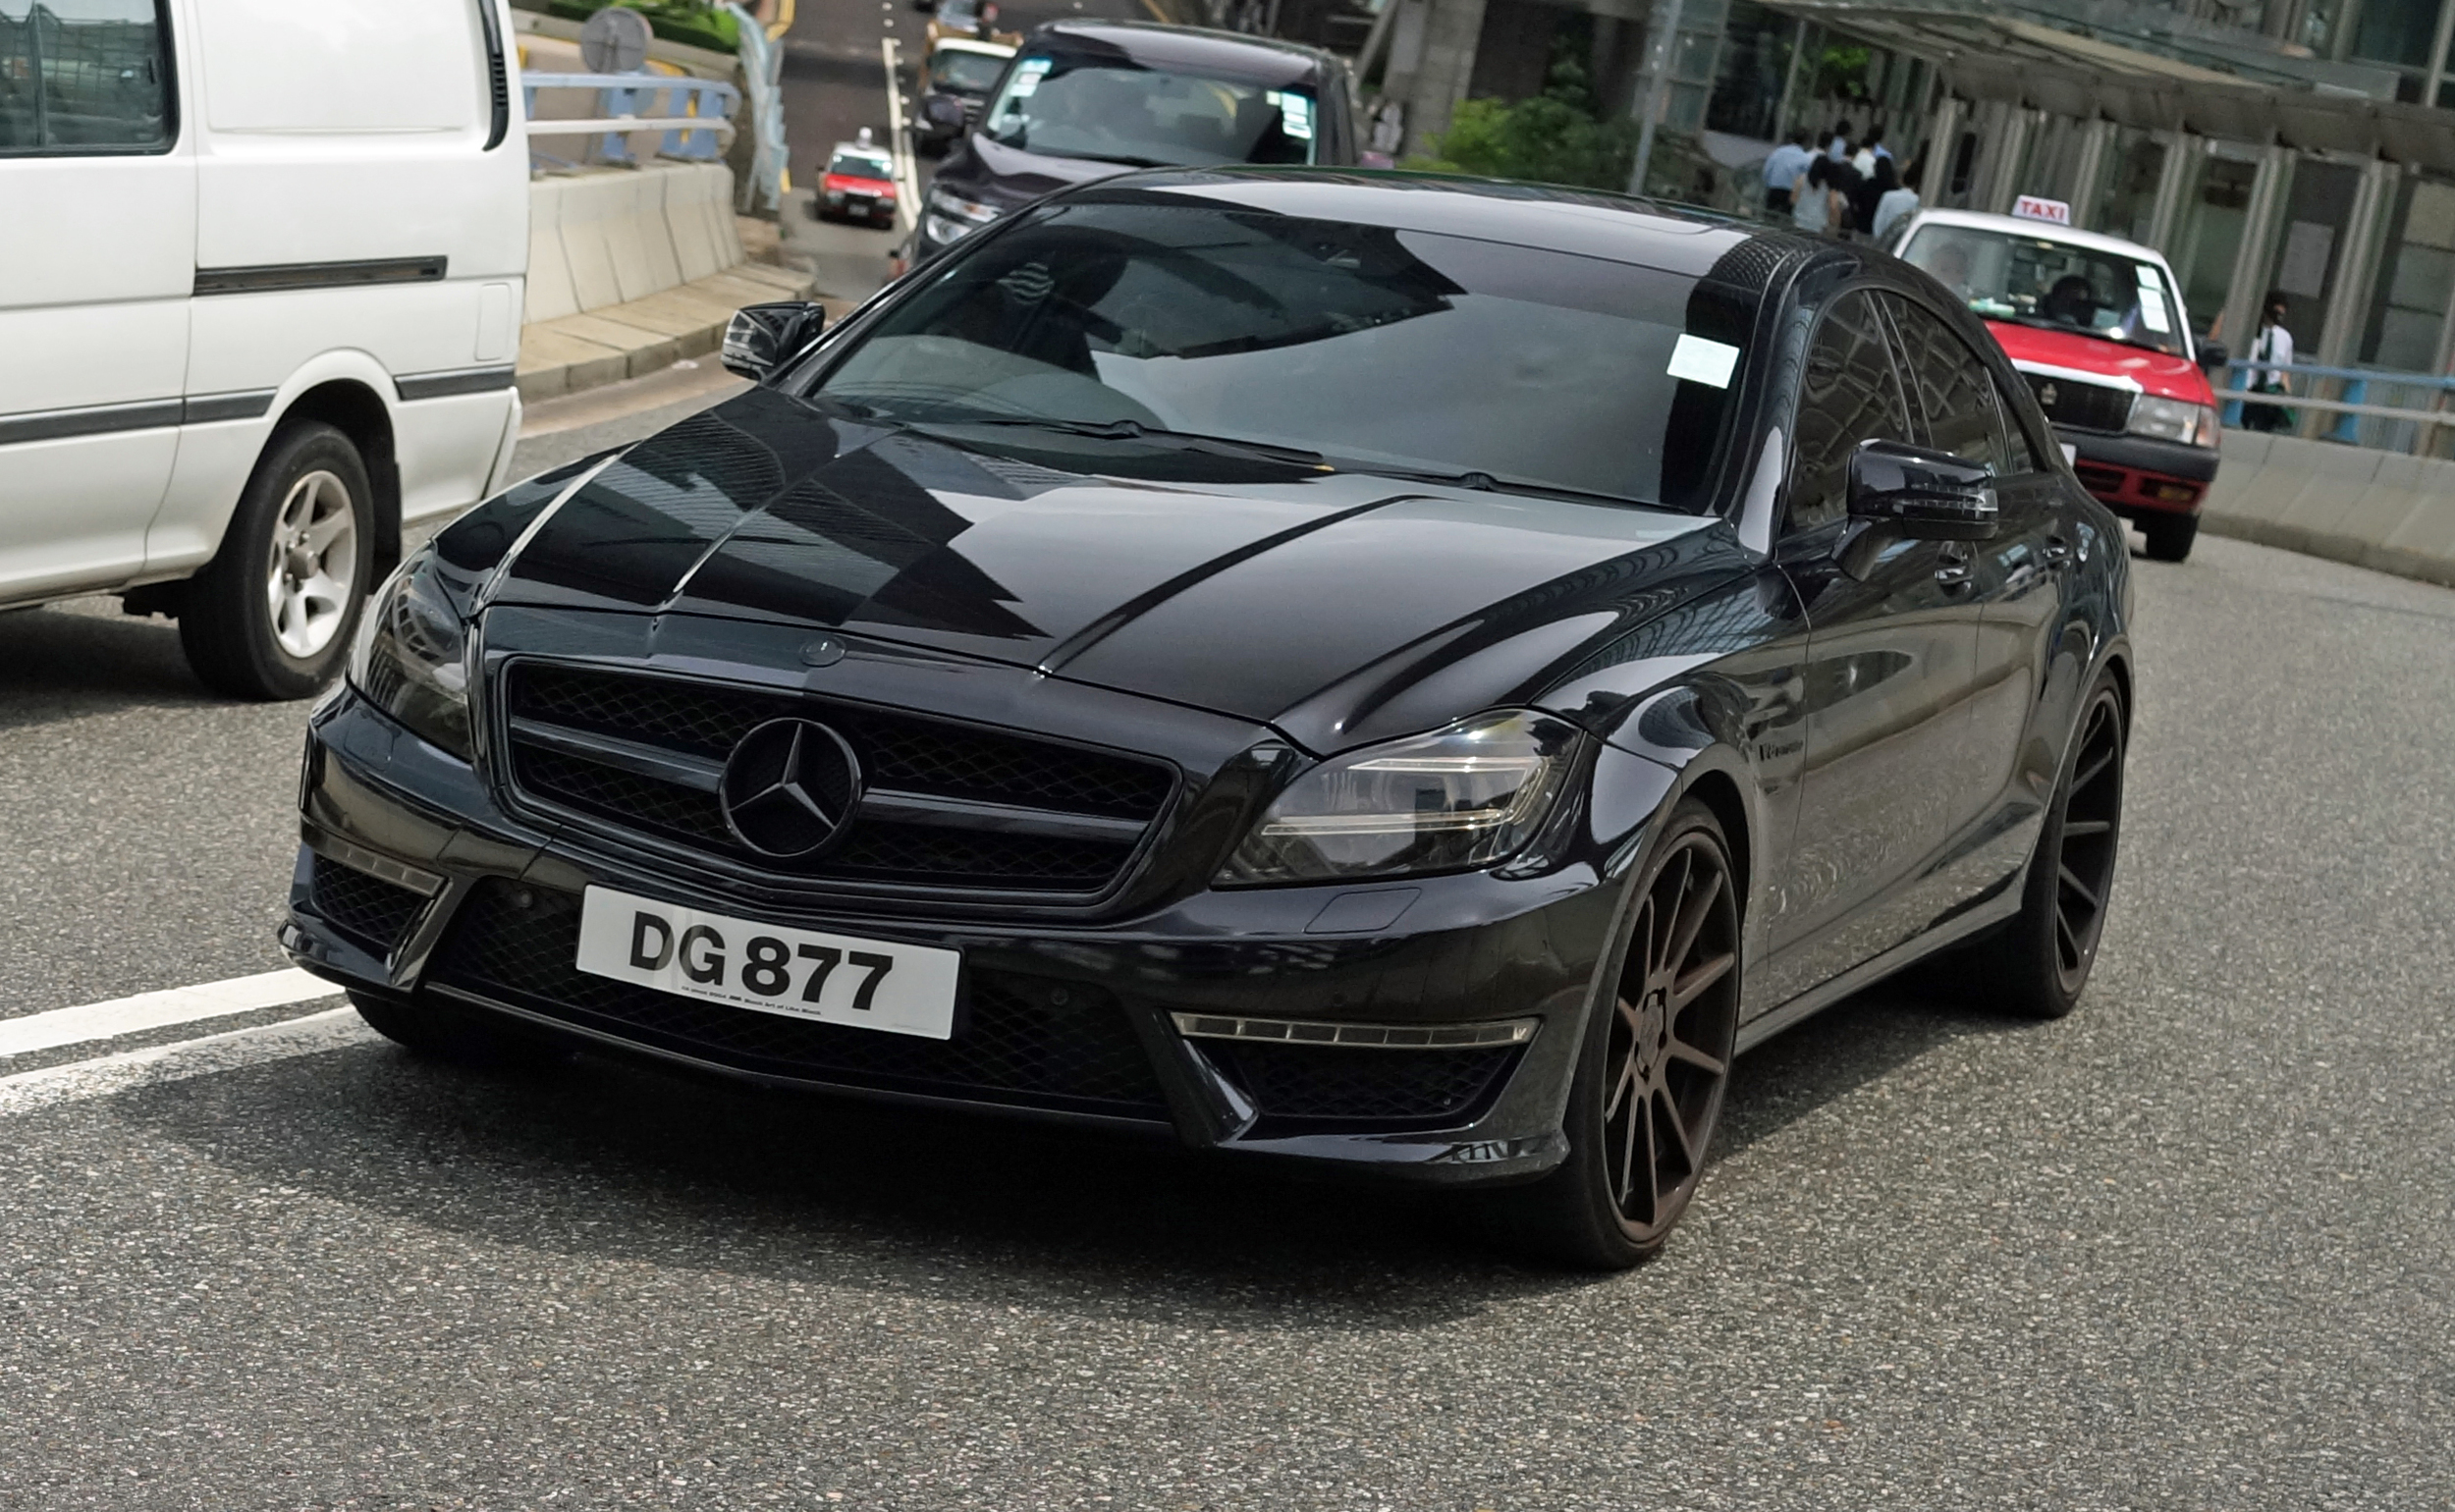 Awesome - a pimped out Mercedes Benz